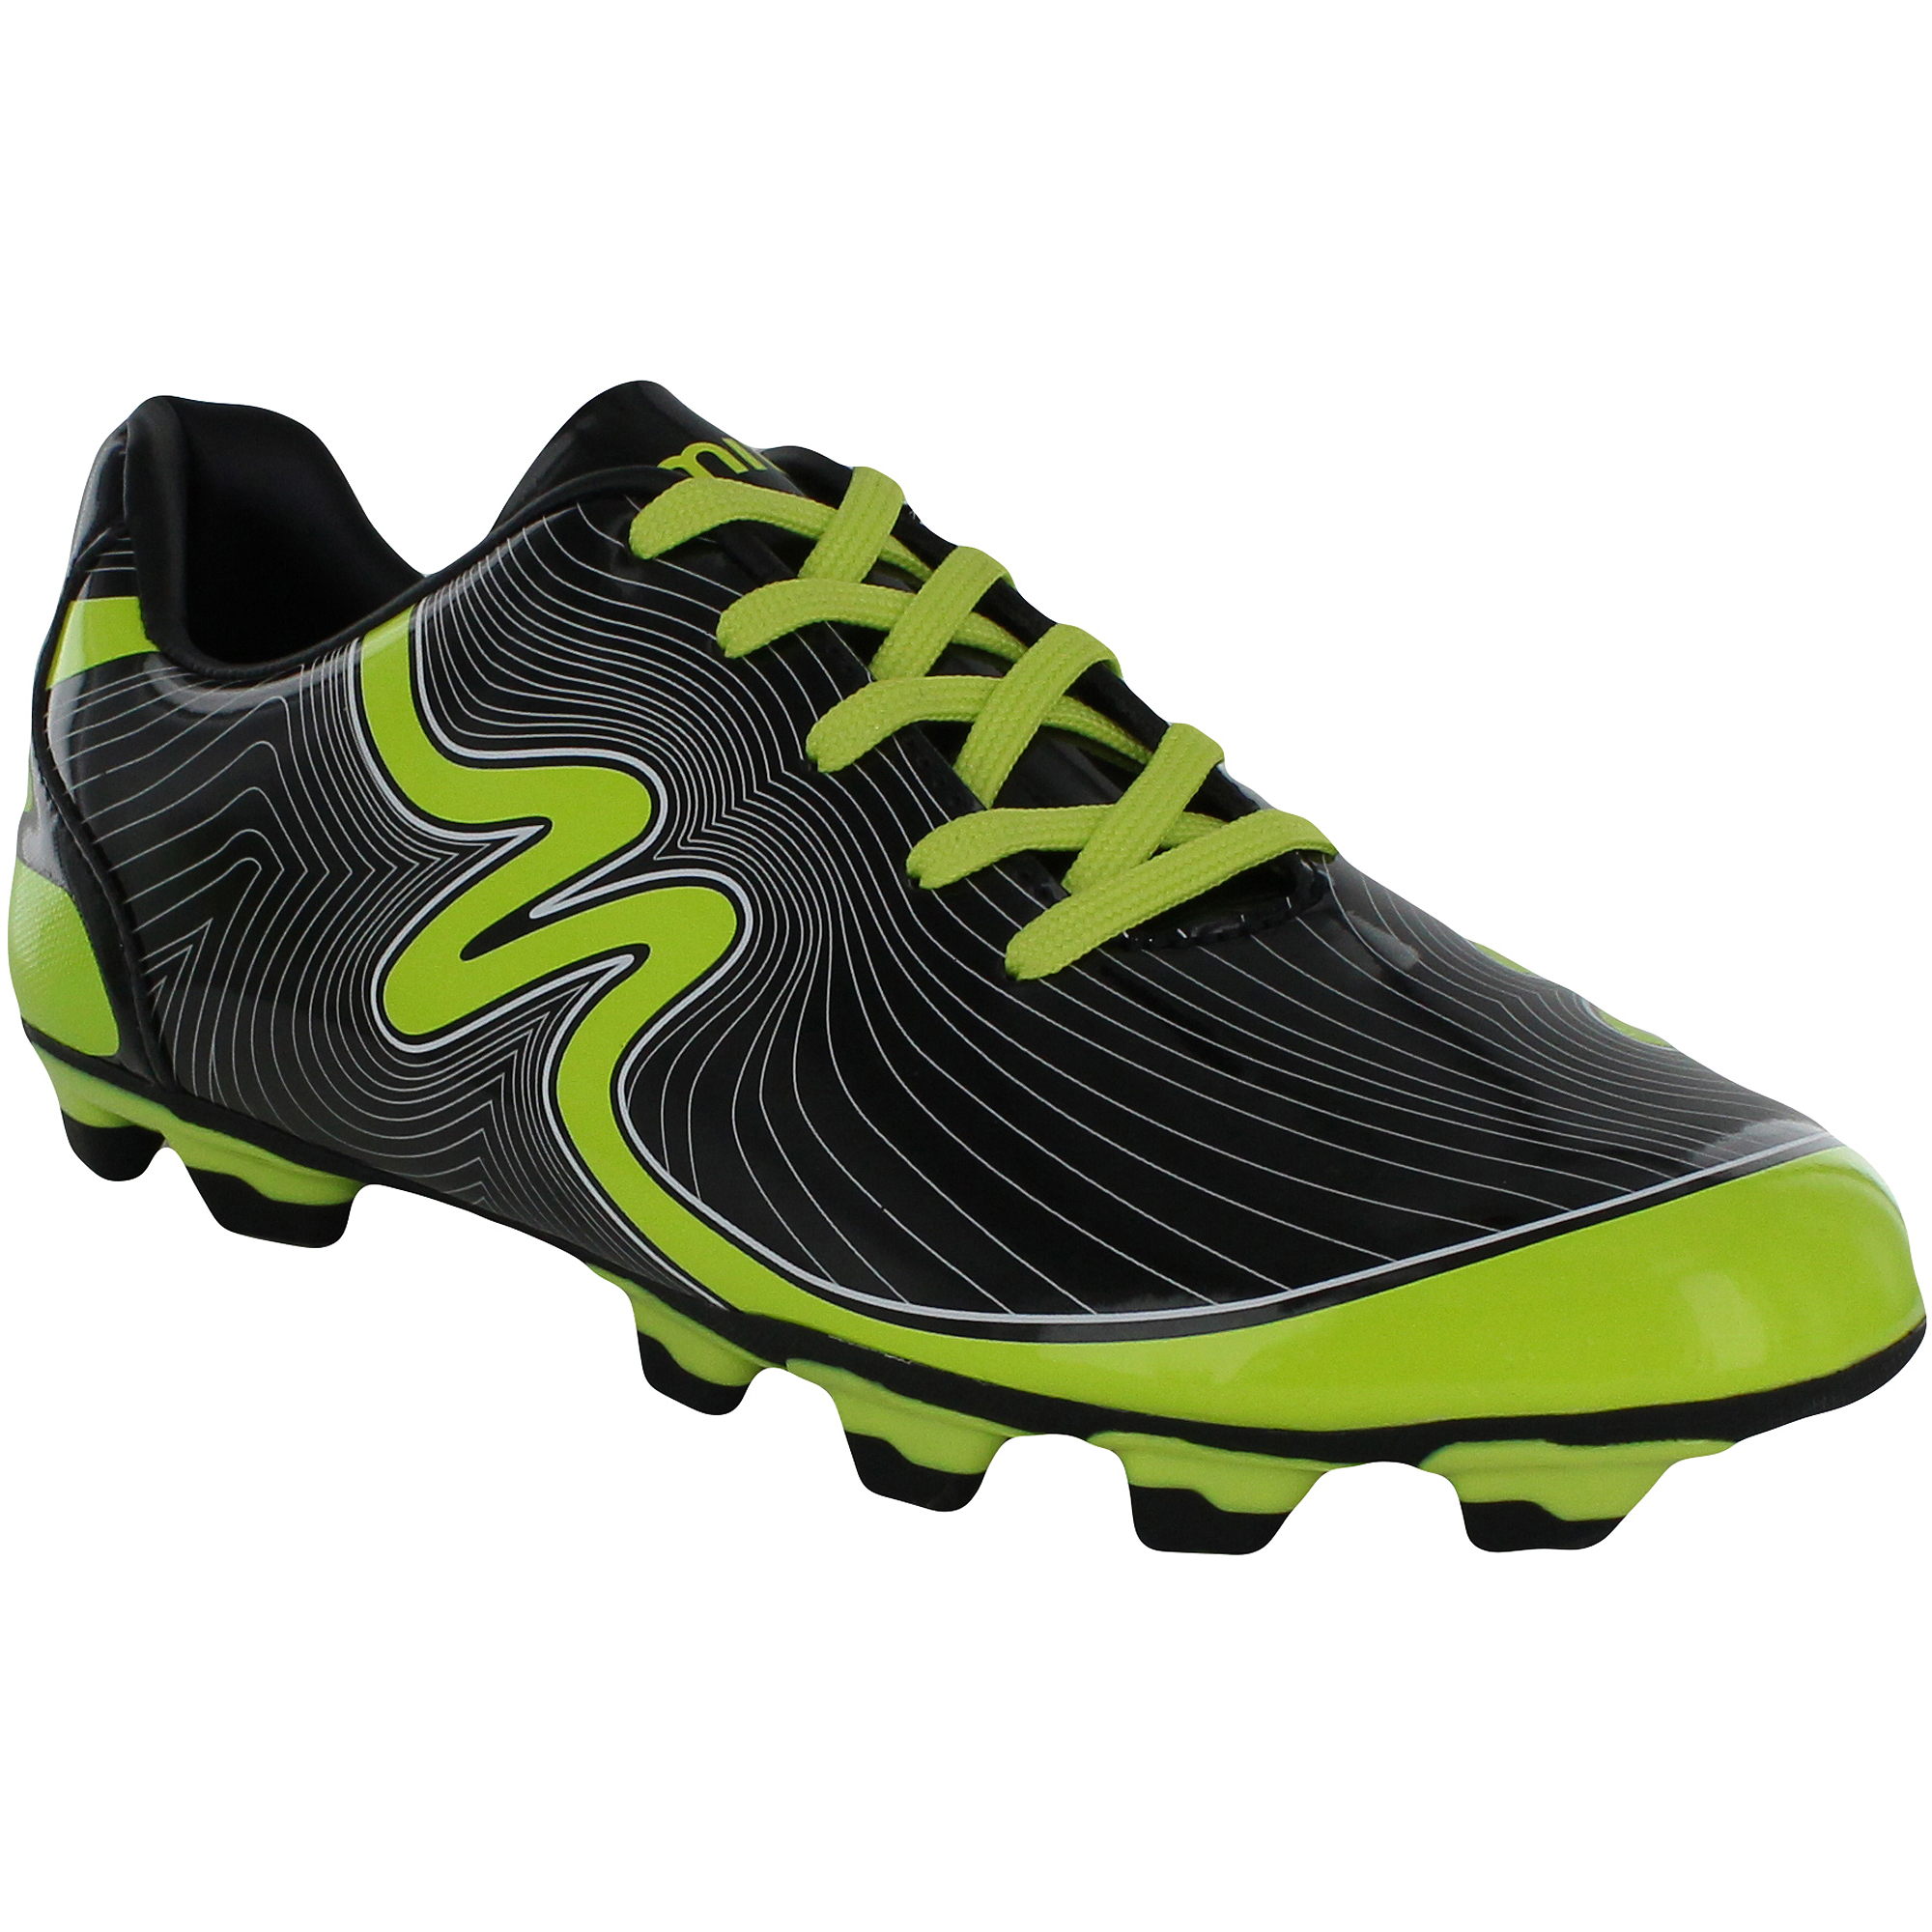 Phoenix by Mitre Boys' Soccer Cleat